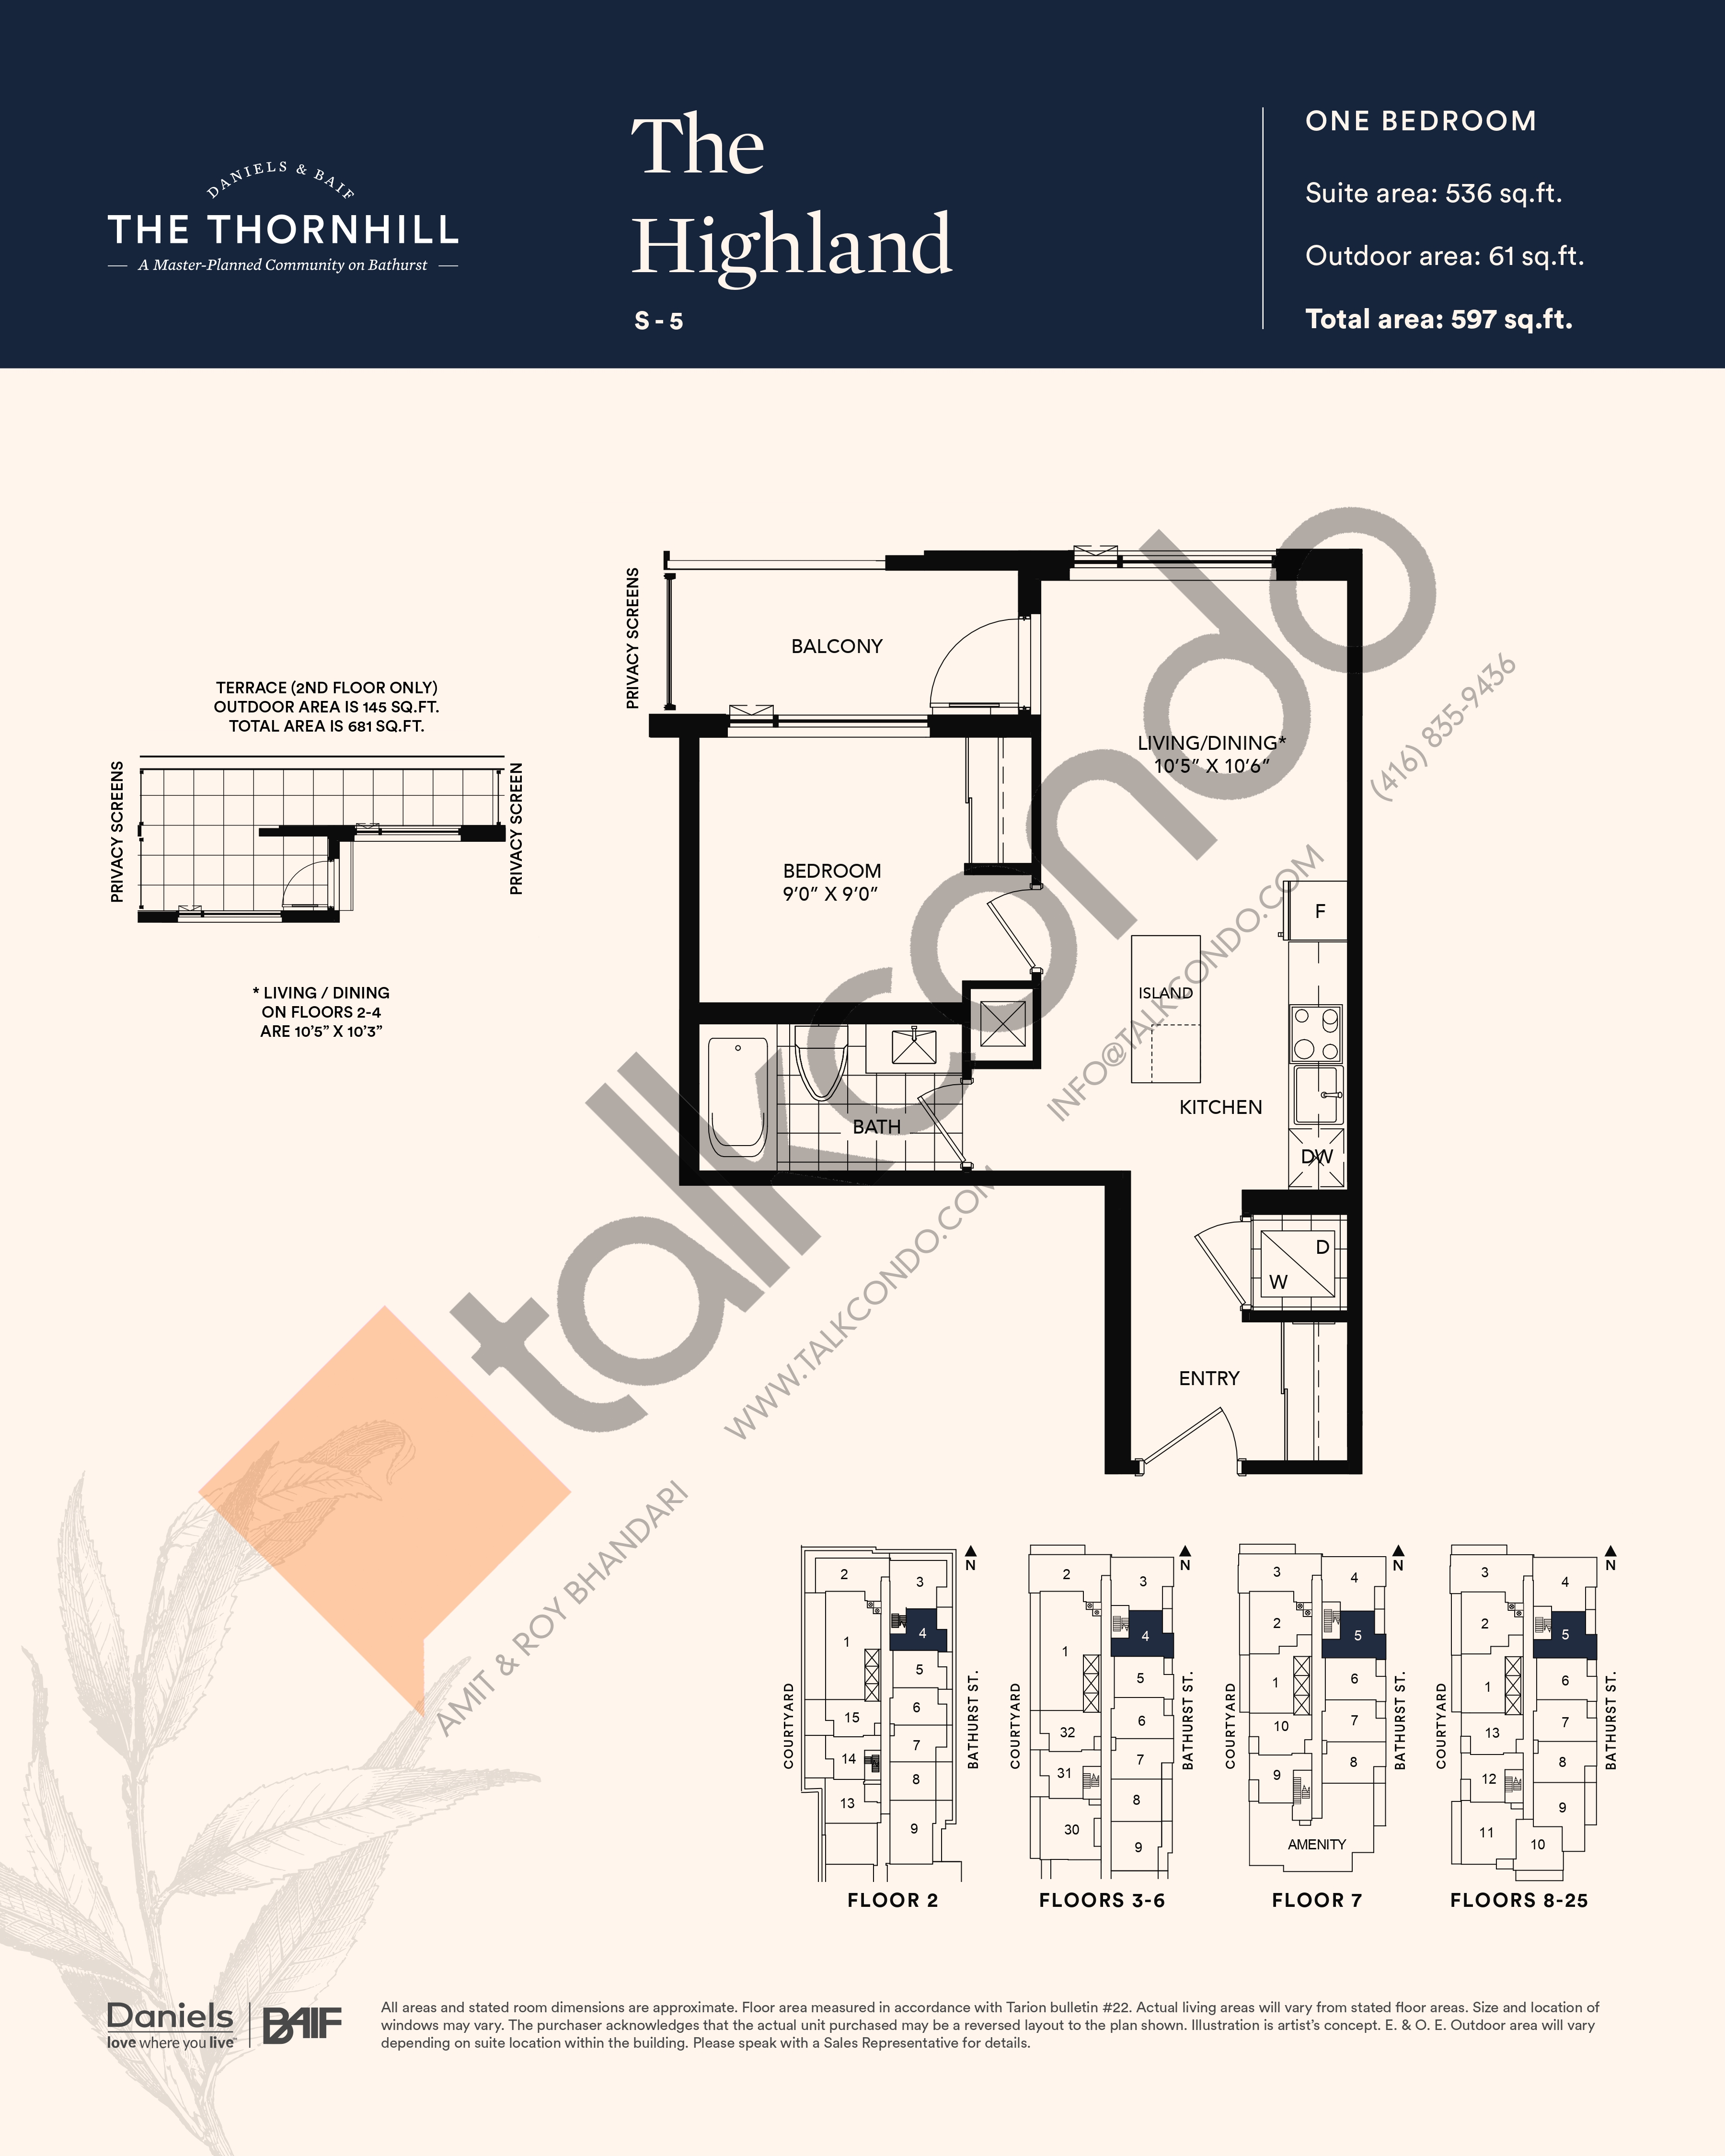 The Highland Floor Plan at The Thornhill Condos - 536 sq.ft